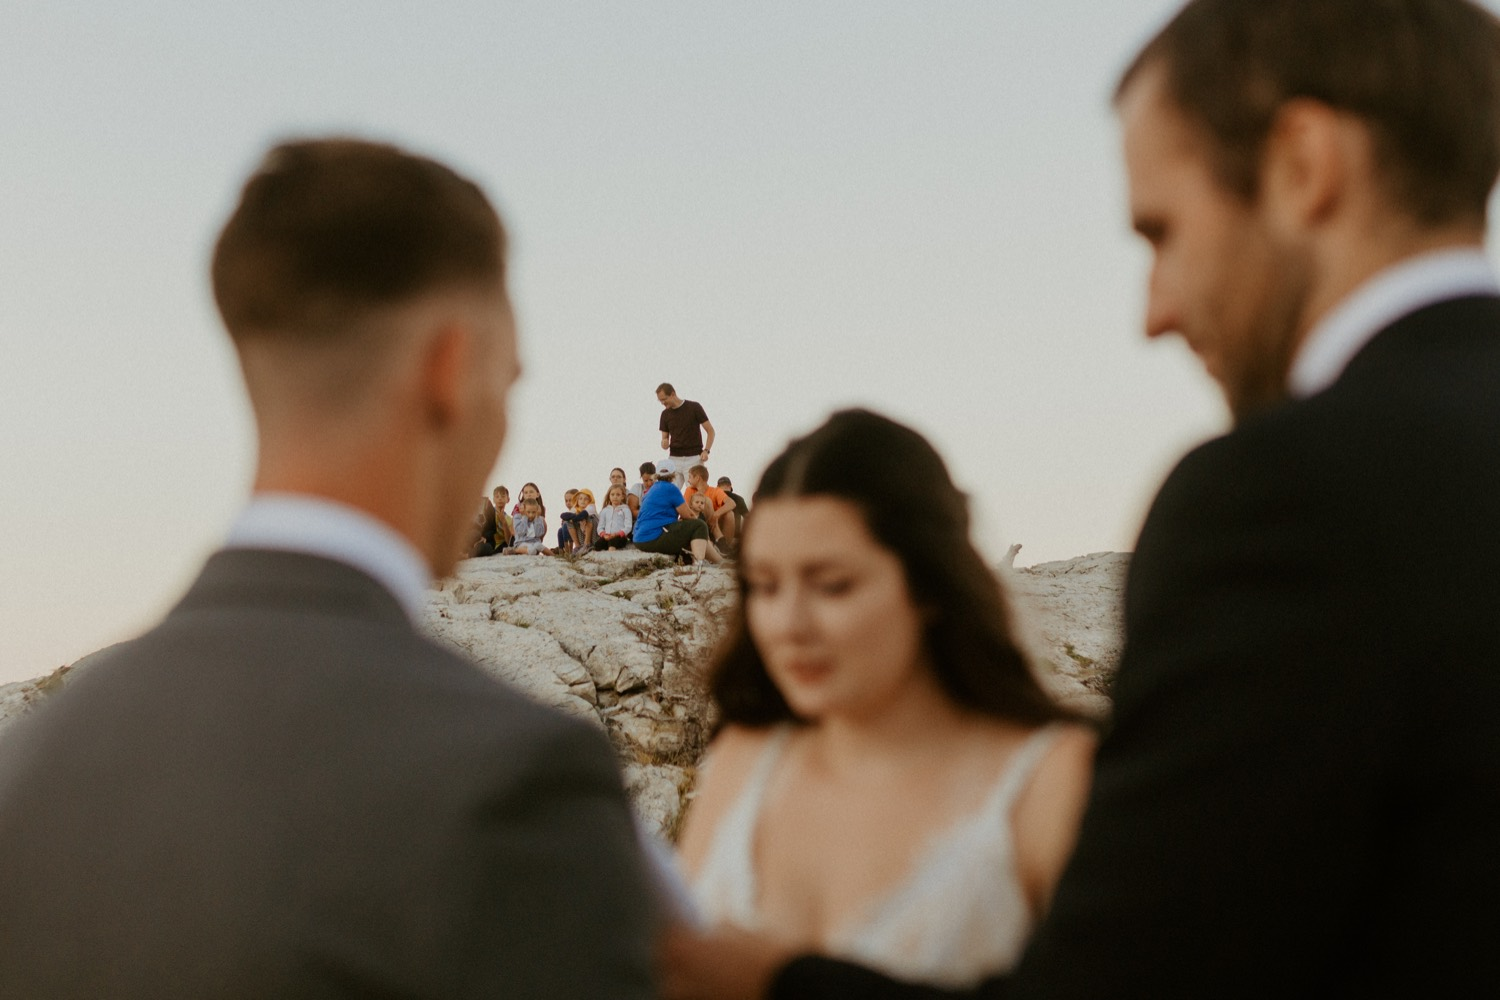 Waterton Wedding Adventurous Mountain Elopement style in the beautiful Canadian Rocky Mountains ceremony at the mountain top with close friends and officiant with crowd watching from behind